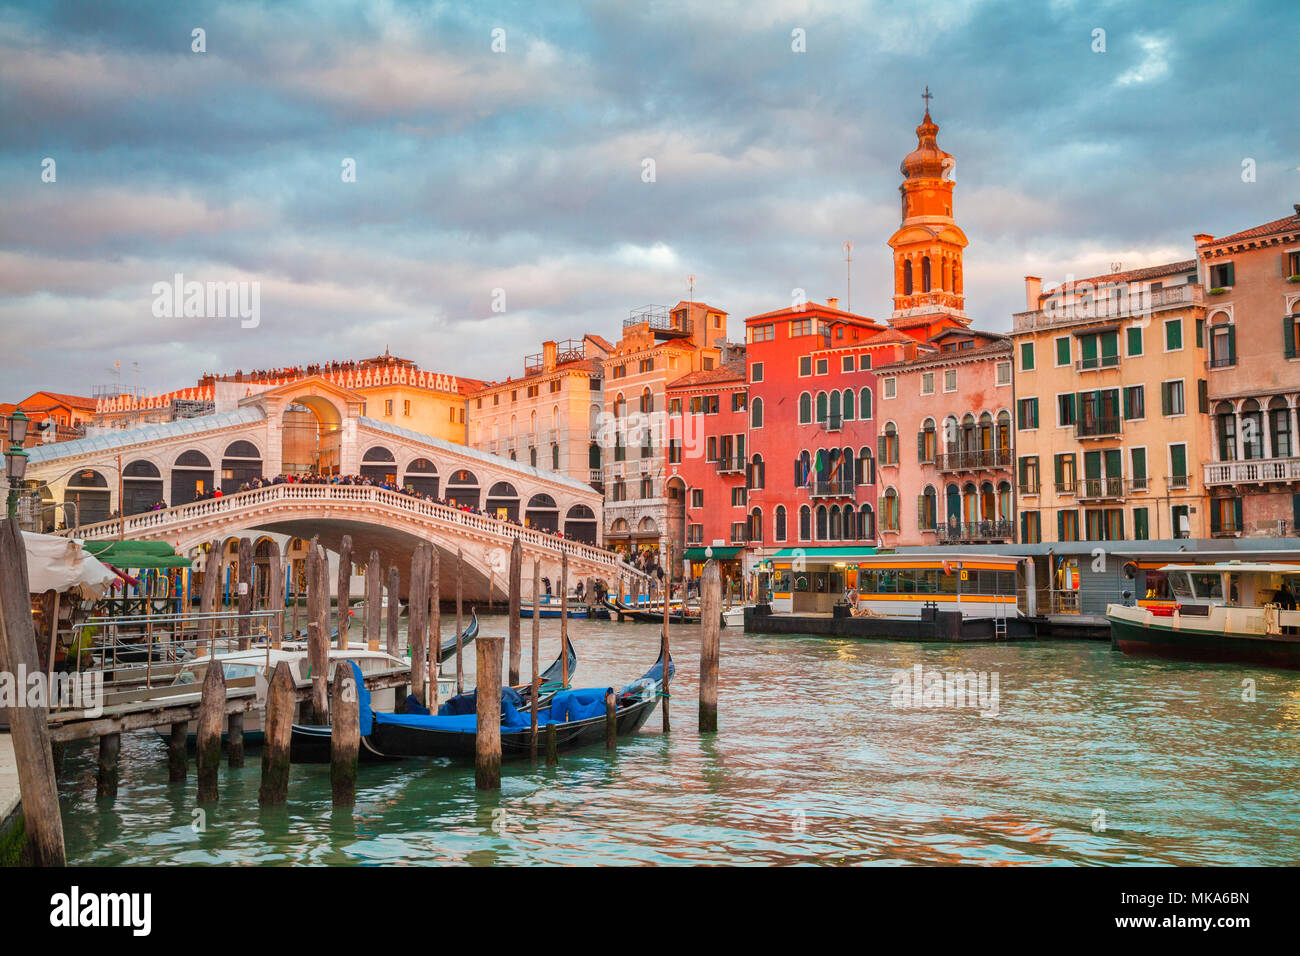 Classic panoramic view with traditional Gondolas on famous Canal Grande with famous Rialto Bridge in the background in beautiful golden evening light  - Stock Image